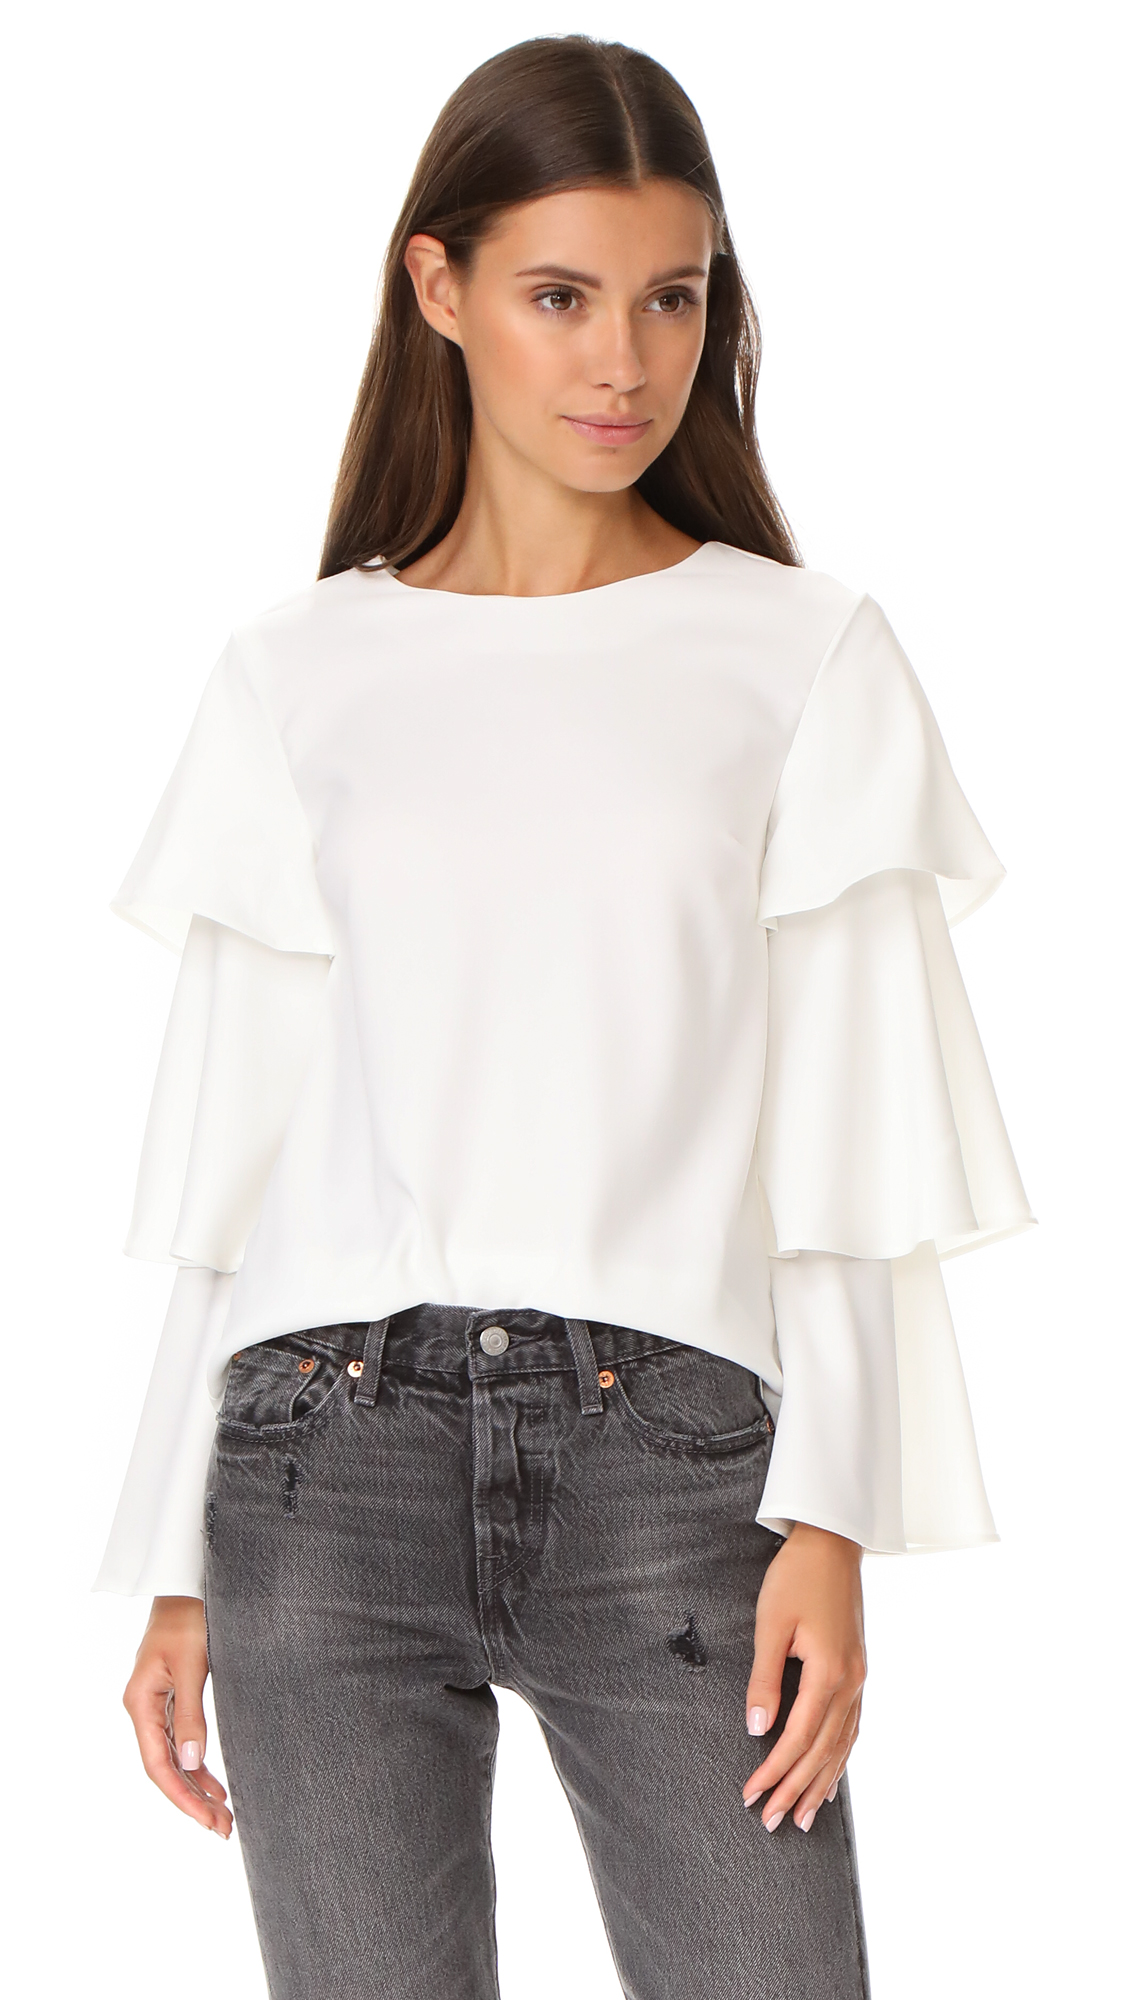 ENGLISH FACTORY Ruffle Accent Blouse - White